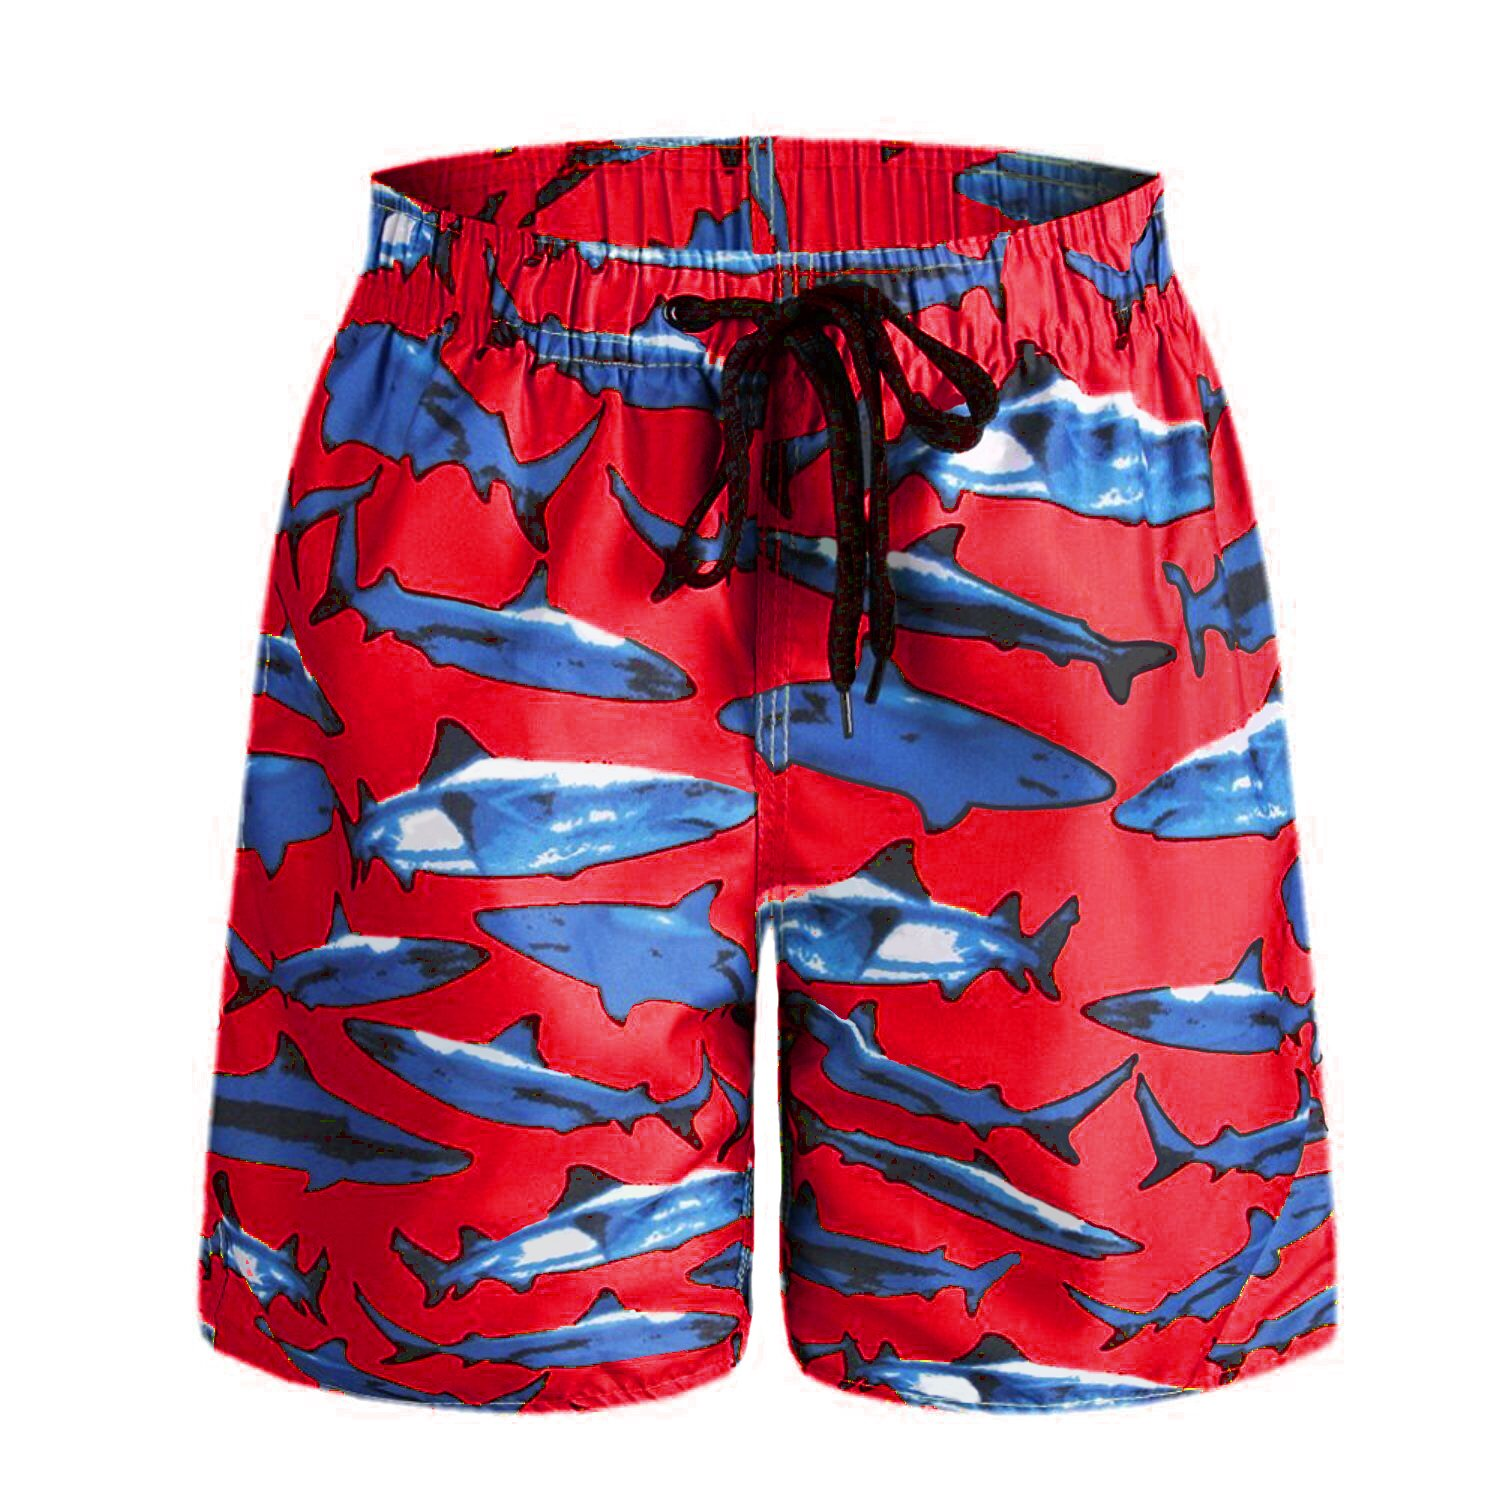 ORANSSI Boys Kids Shark Printed Swim Trunks Board Shorts with Pockets (S(US 4-6), Red)